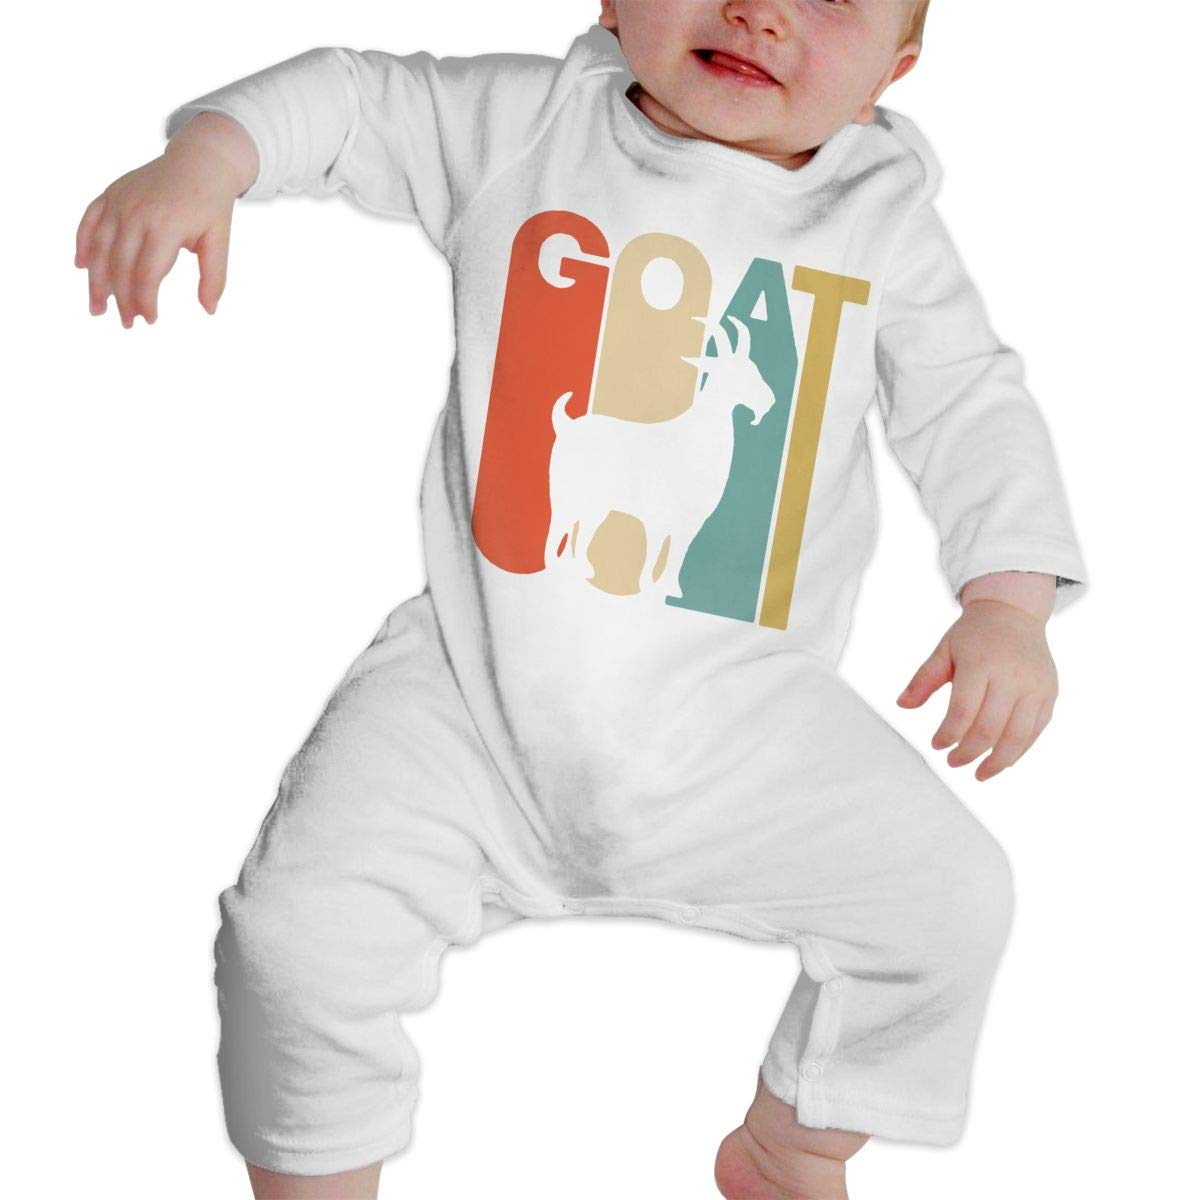 A1BY-5US Baby Infant Toddler Bodysuits Goat Cotton Long Sleeve Baby Clothes